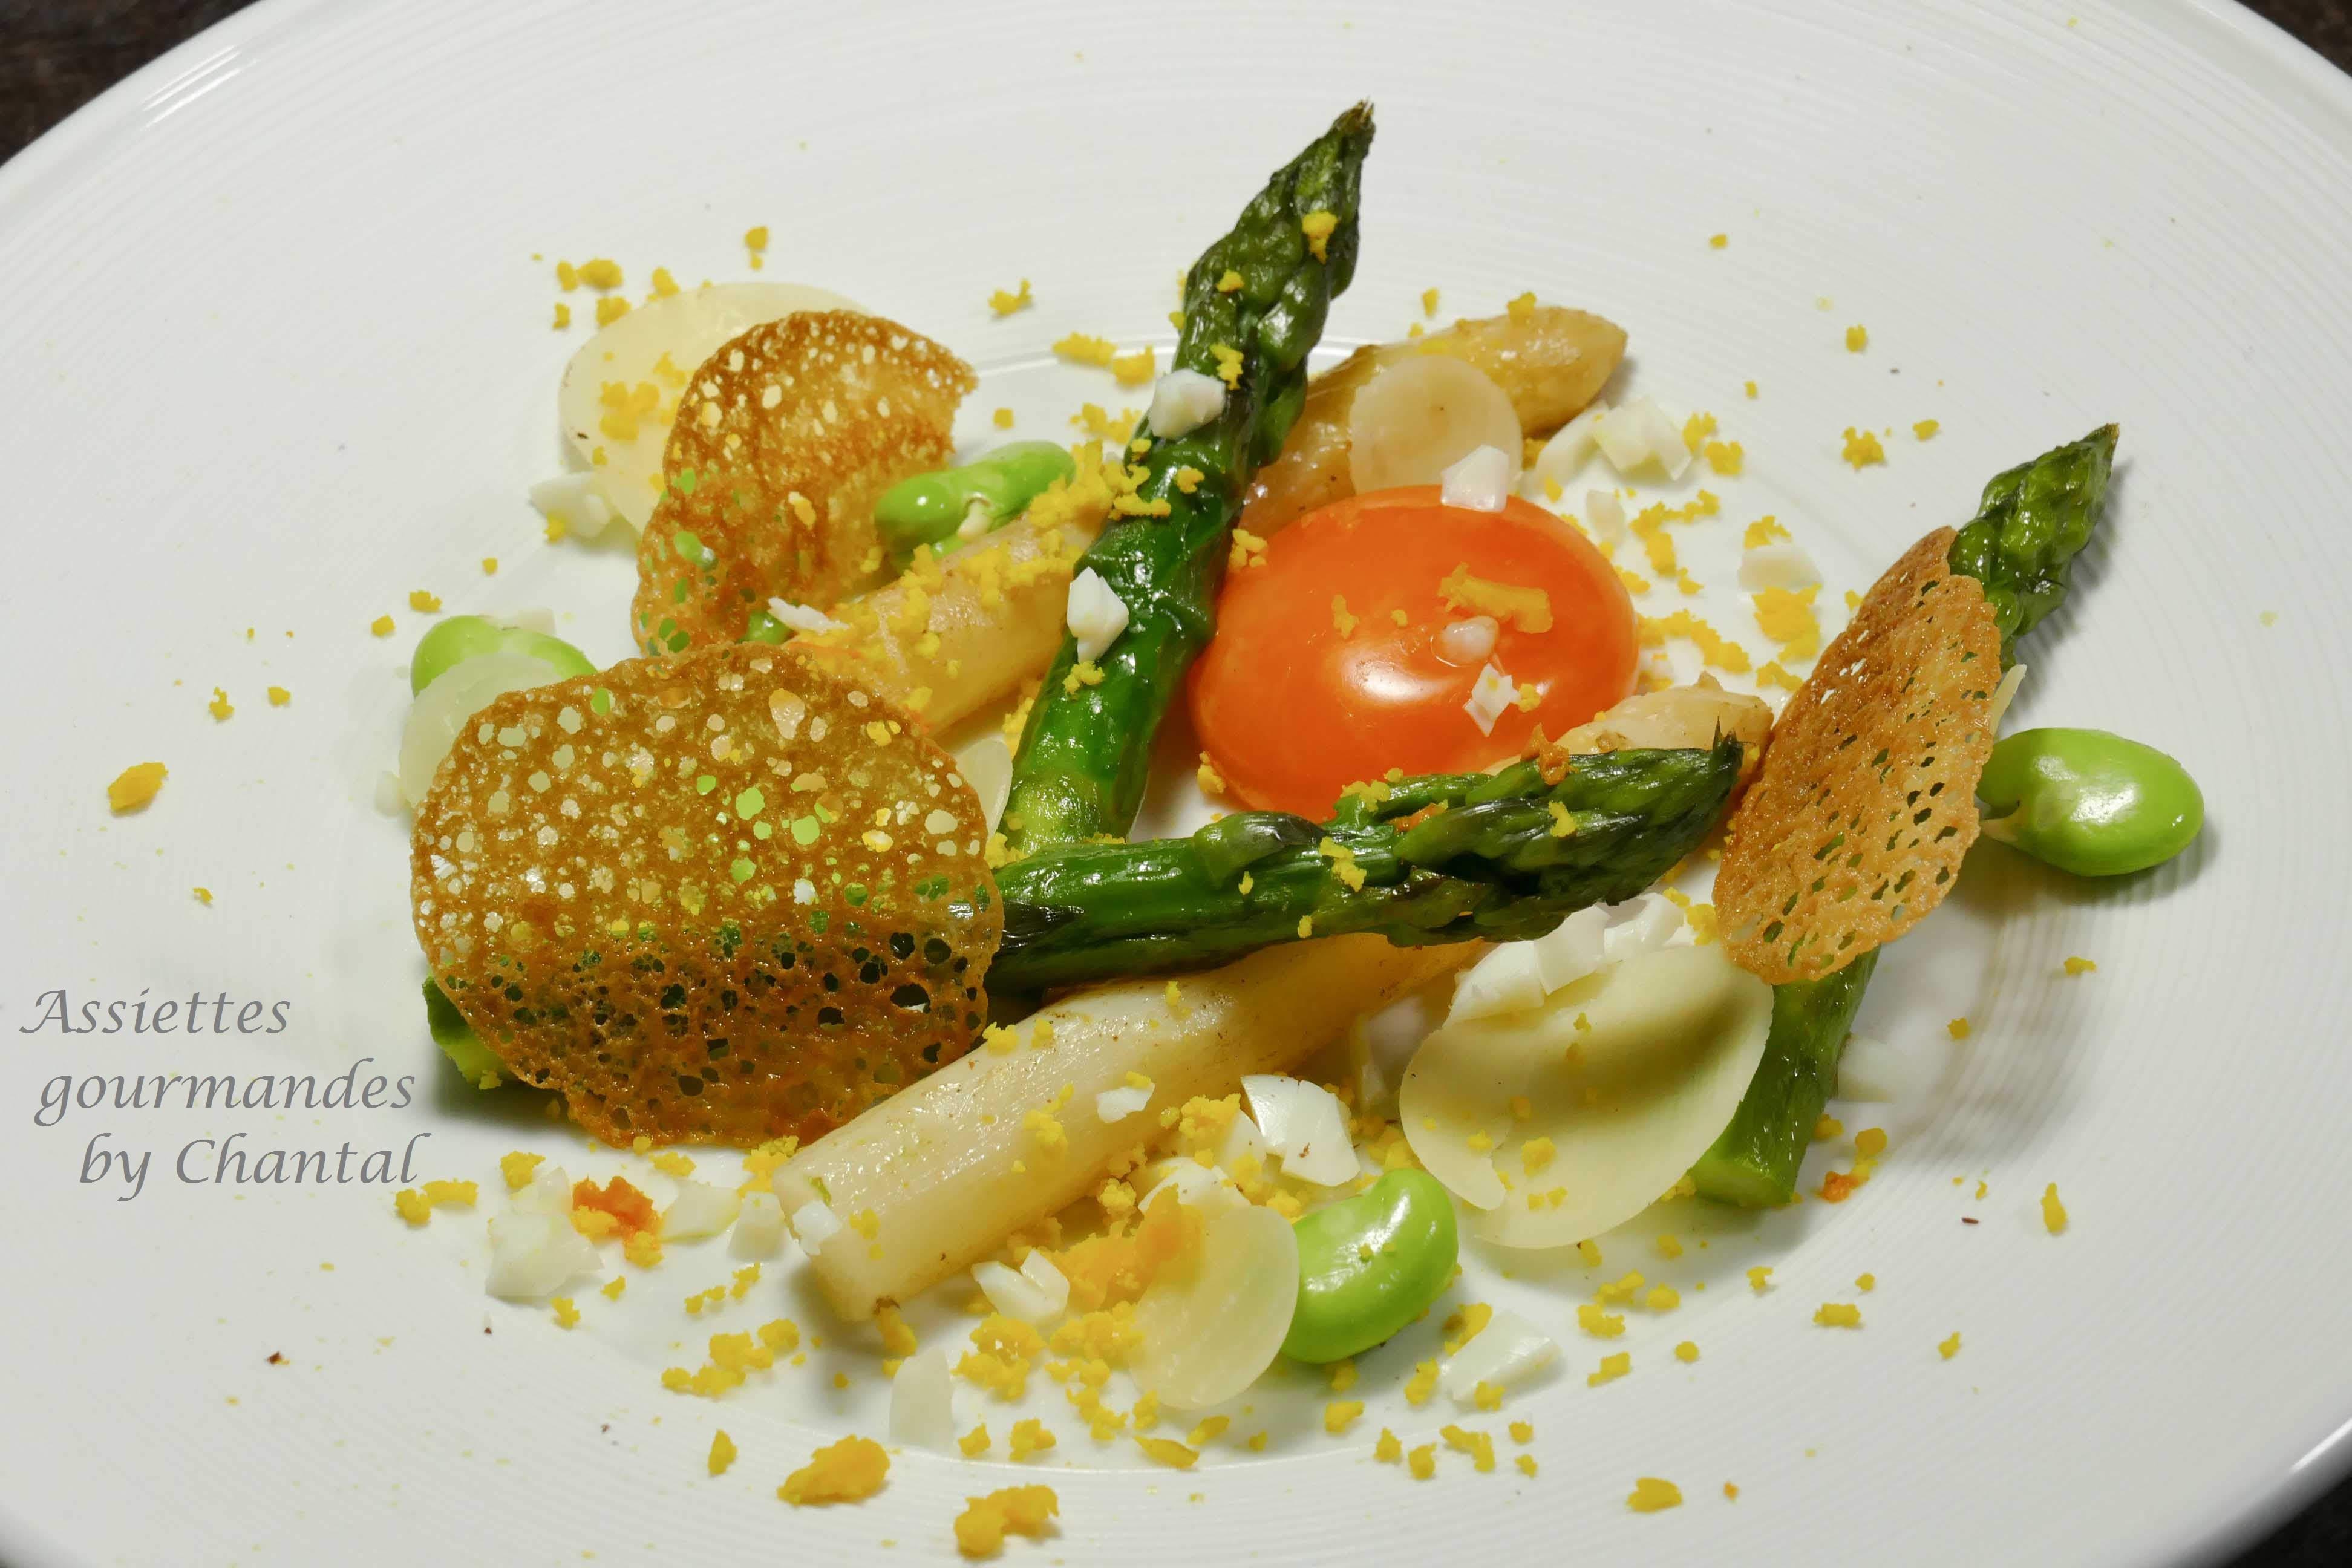 asperges en vinaigrette et oeuf cuit au x r s recette de laurent azoulay. Black Bedroom Furniture Sets. Home Design Ideas